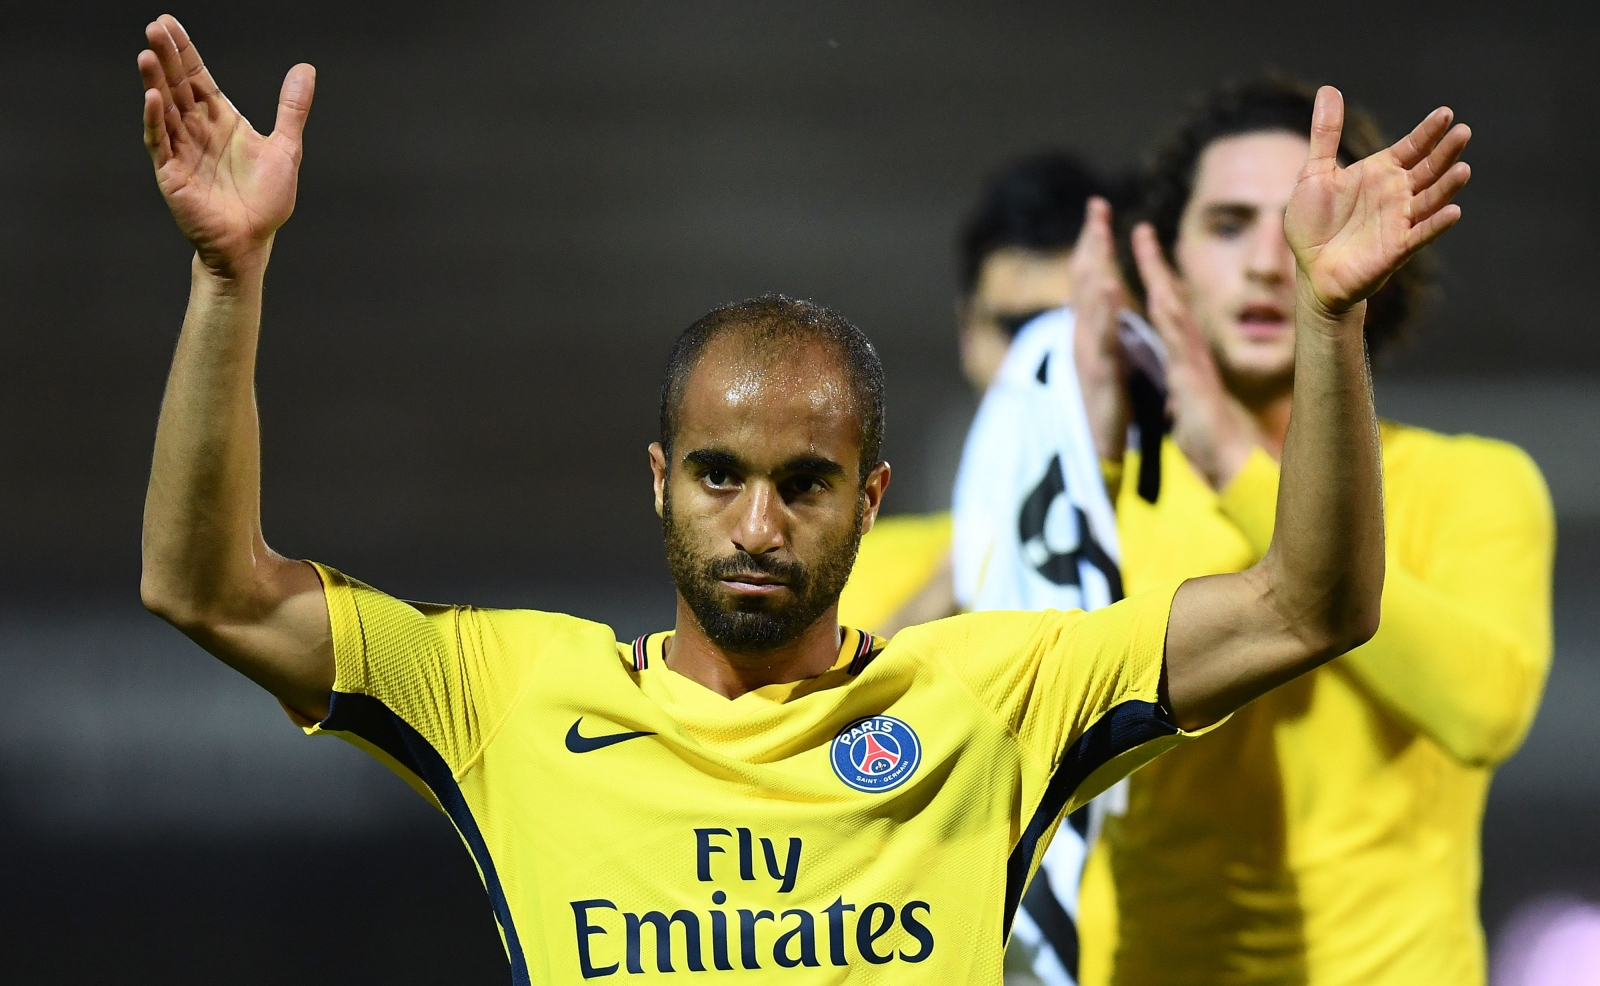 Manchester United face competition to sign Paris Saint-Germain outcast Lucas Moura